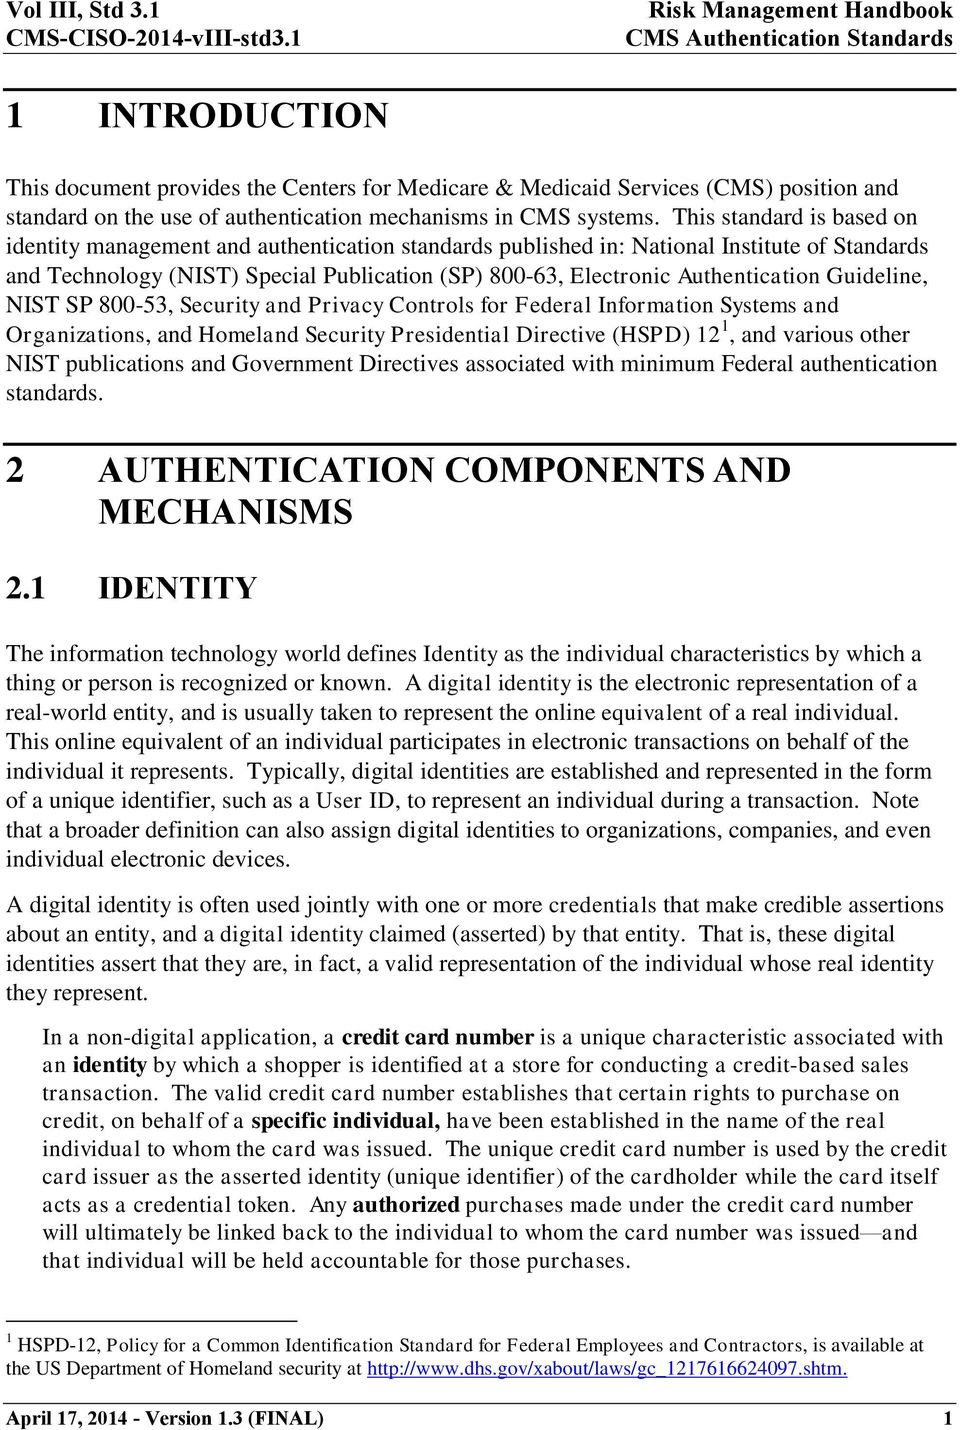 This standard is based on identity management and authentication standards published in: National Institute of Standards and Technology (NIST) Special Publication (SP) 800-63, Electronic